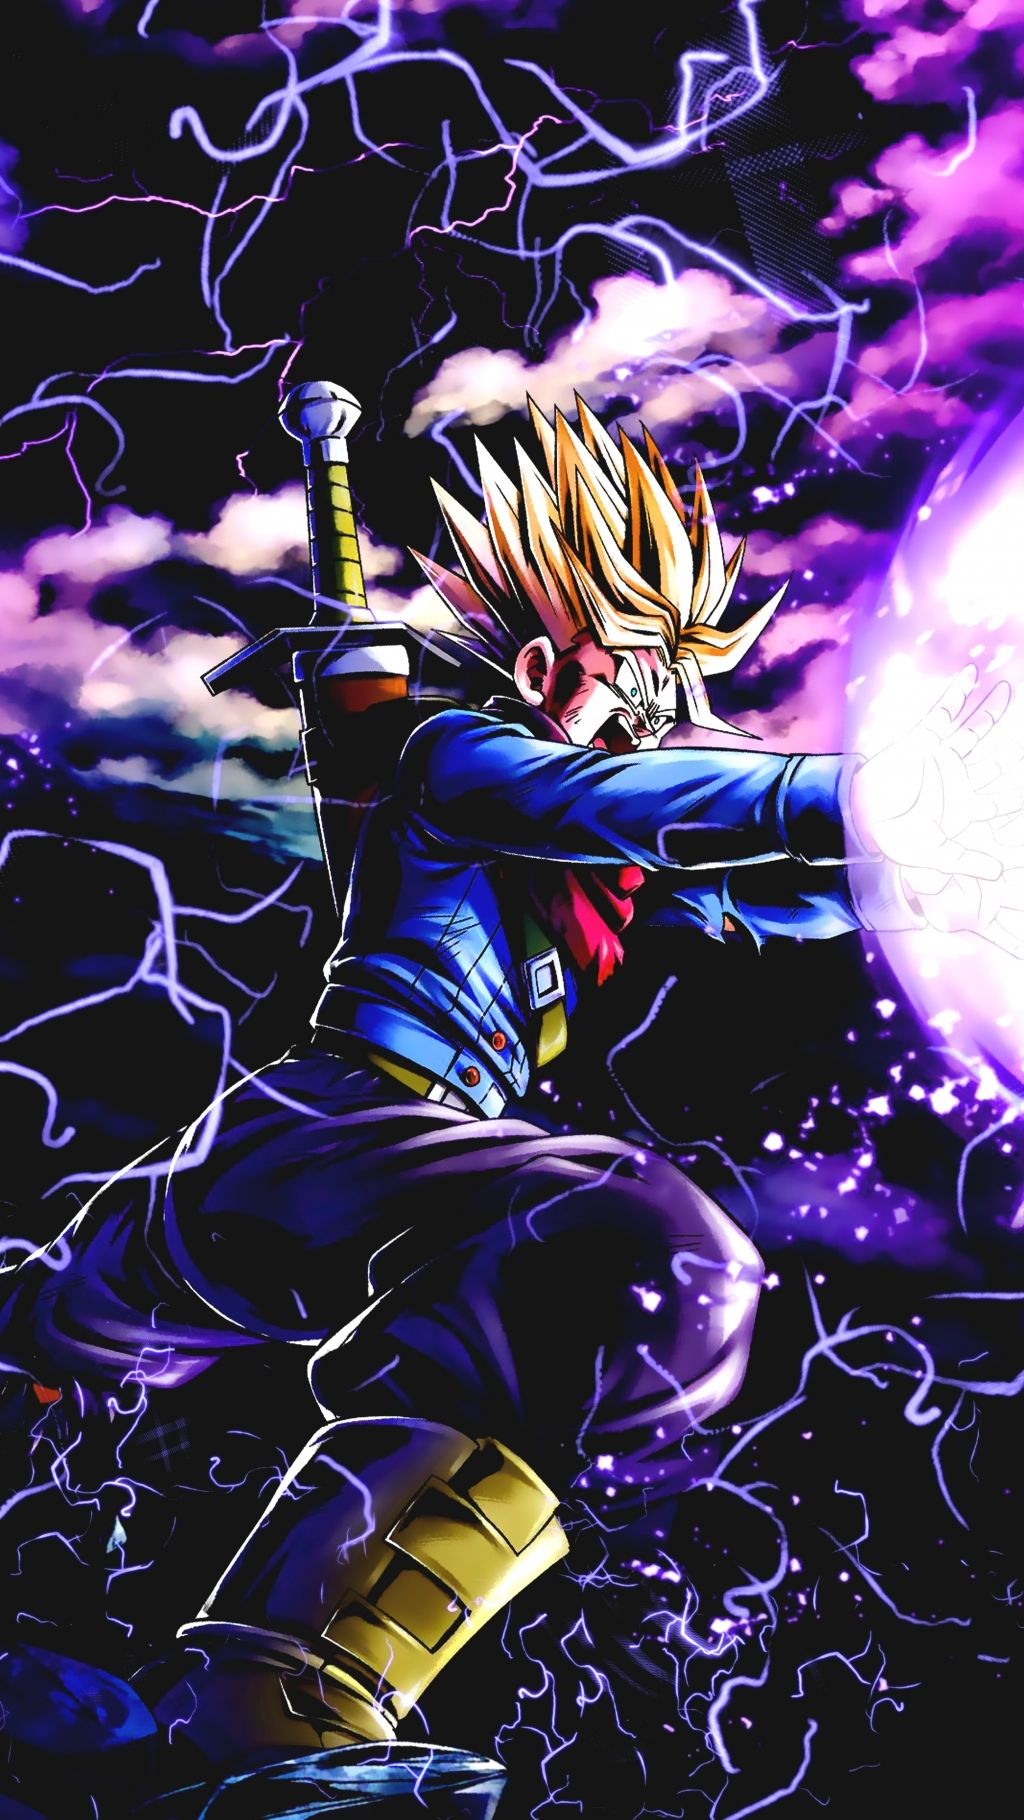 20 4K Wallpapers of DBZ and Super for Phones | Displate thumbnail